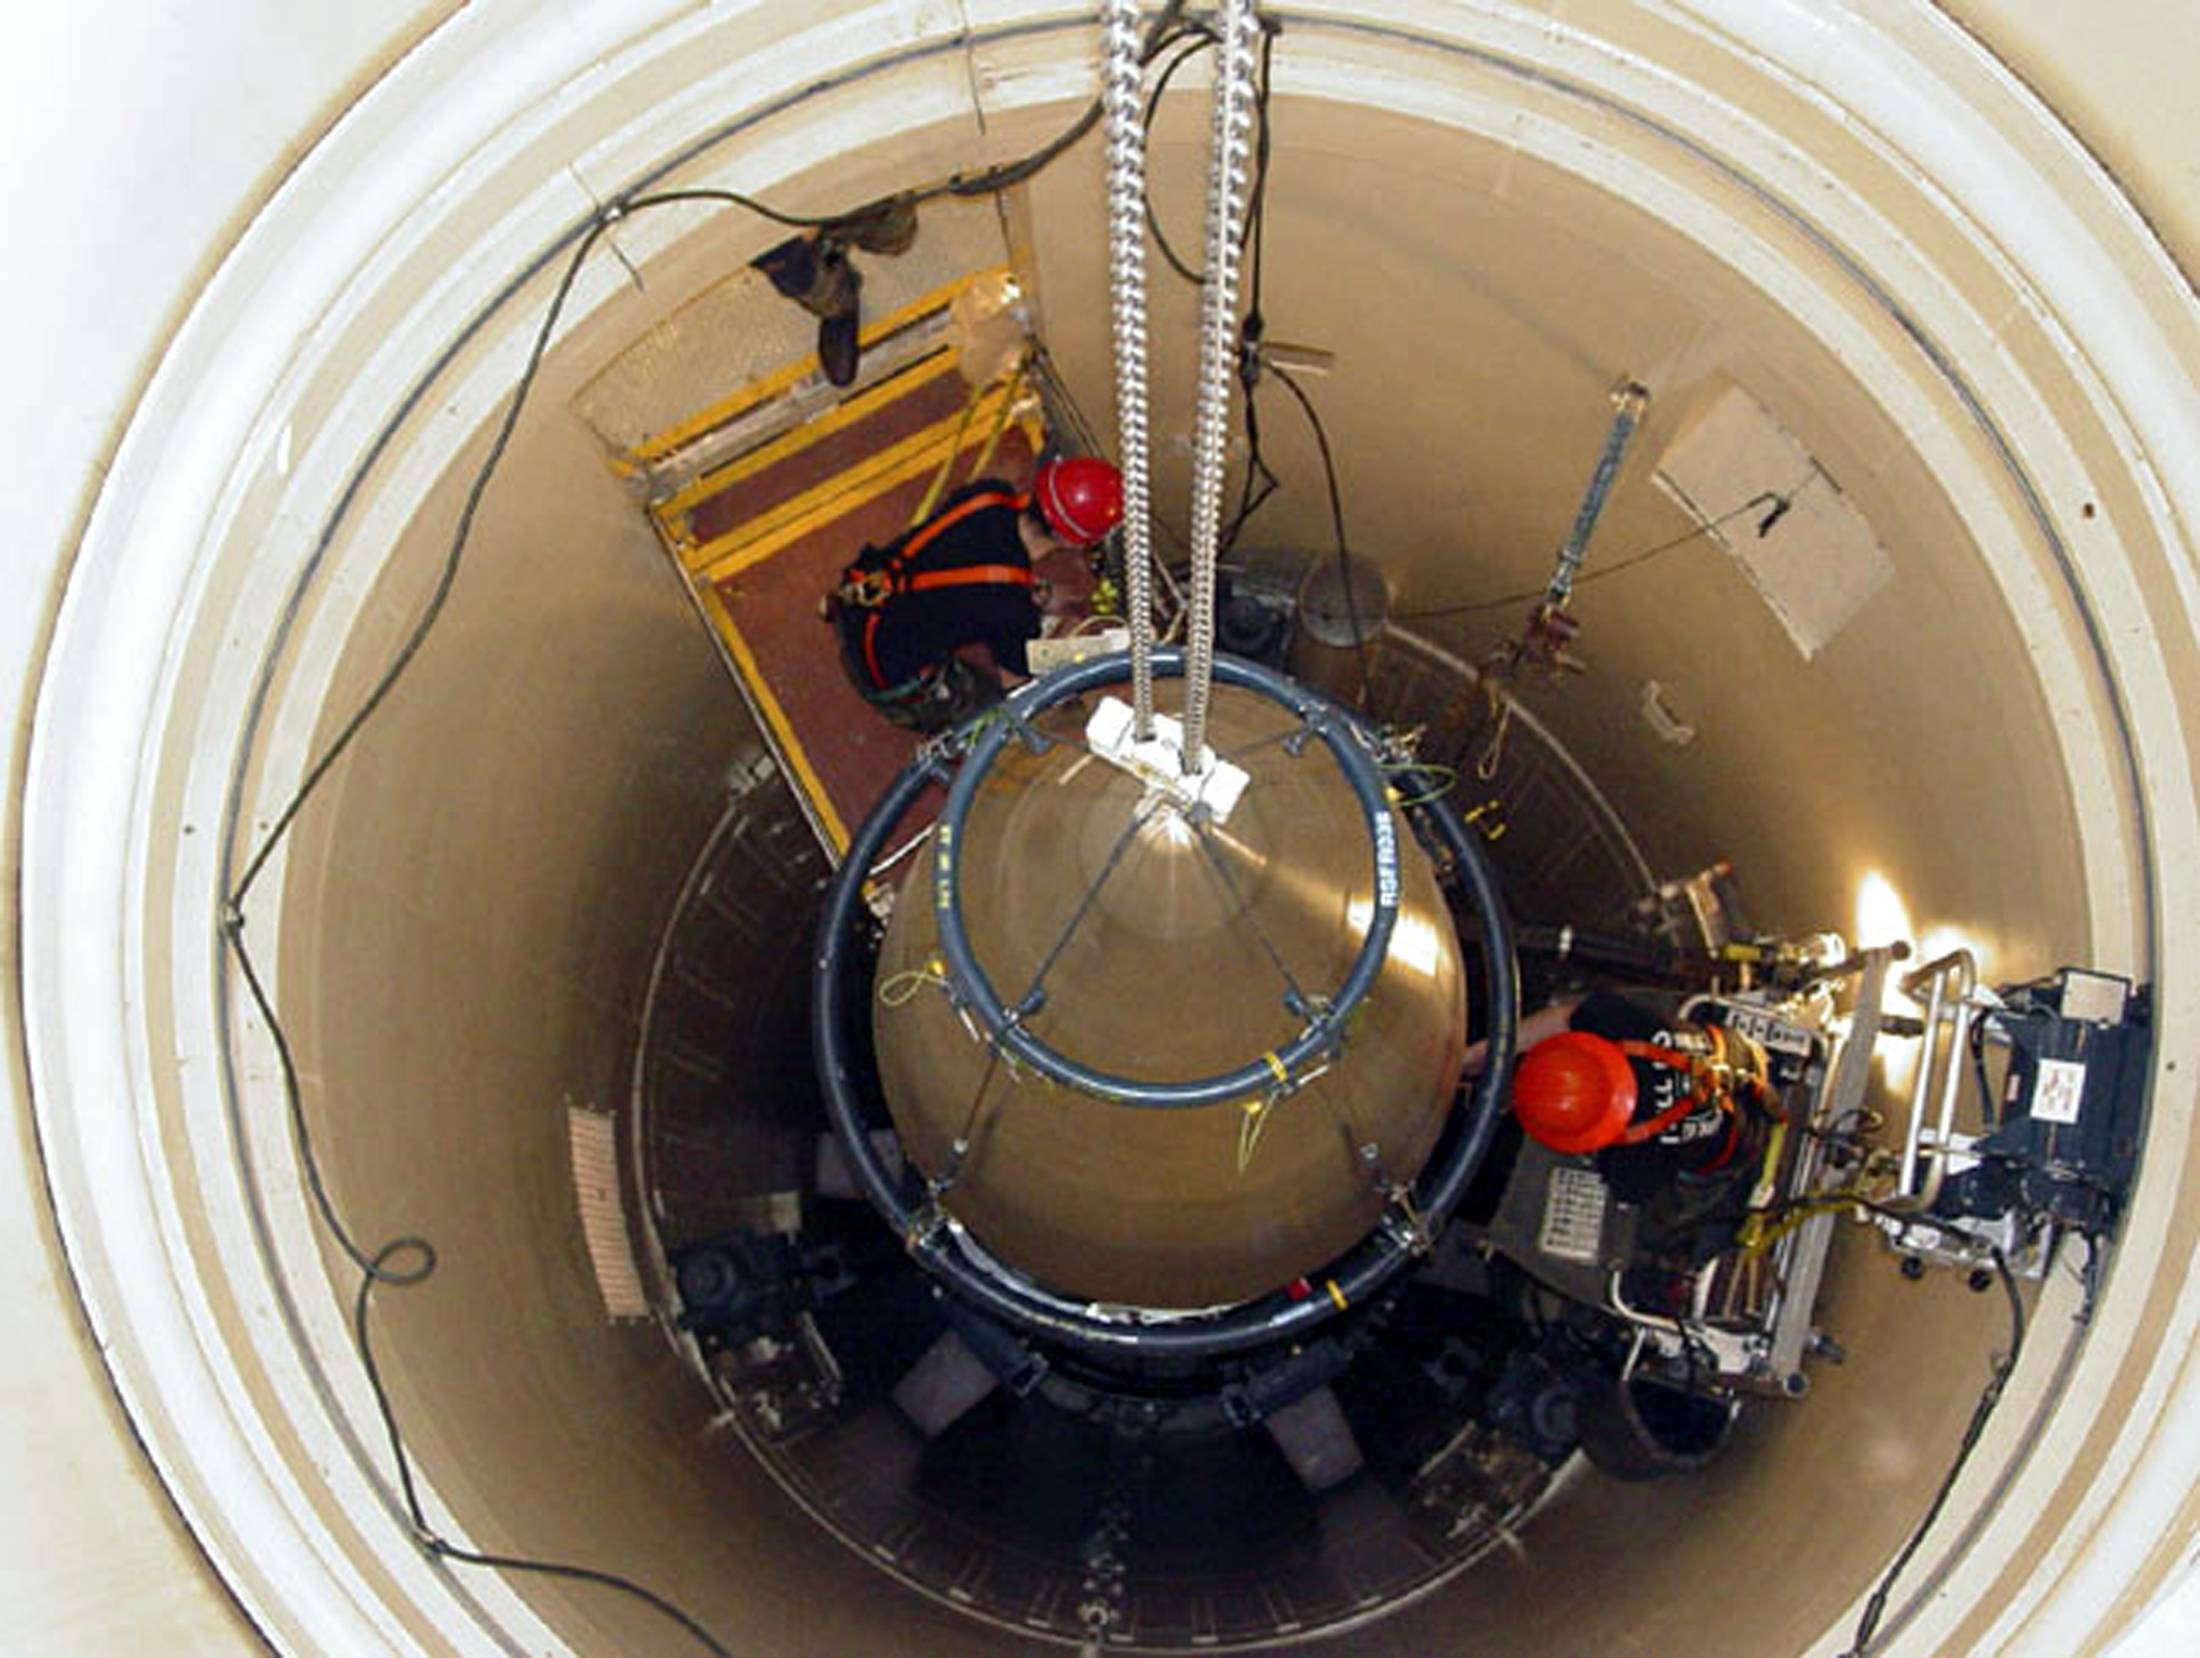 A U.S. Air Force missile maintenance team removes the upper section of an intercontinental ballistic missile with a nuclear warhead at Malmstrom Air Force Base in Montana.  | USAF / VIA REUTERS